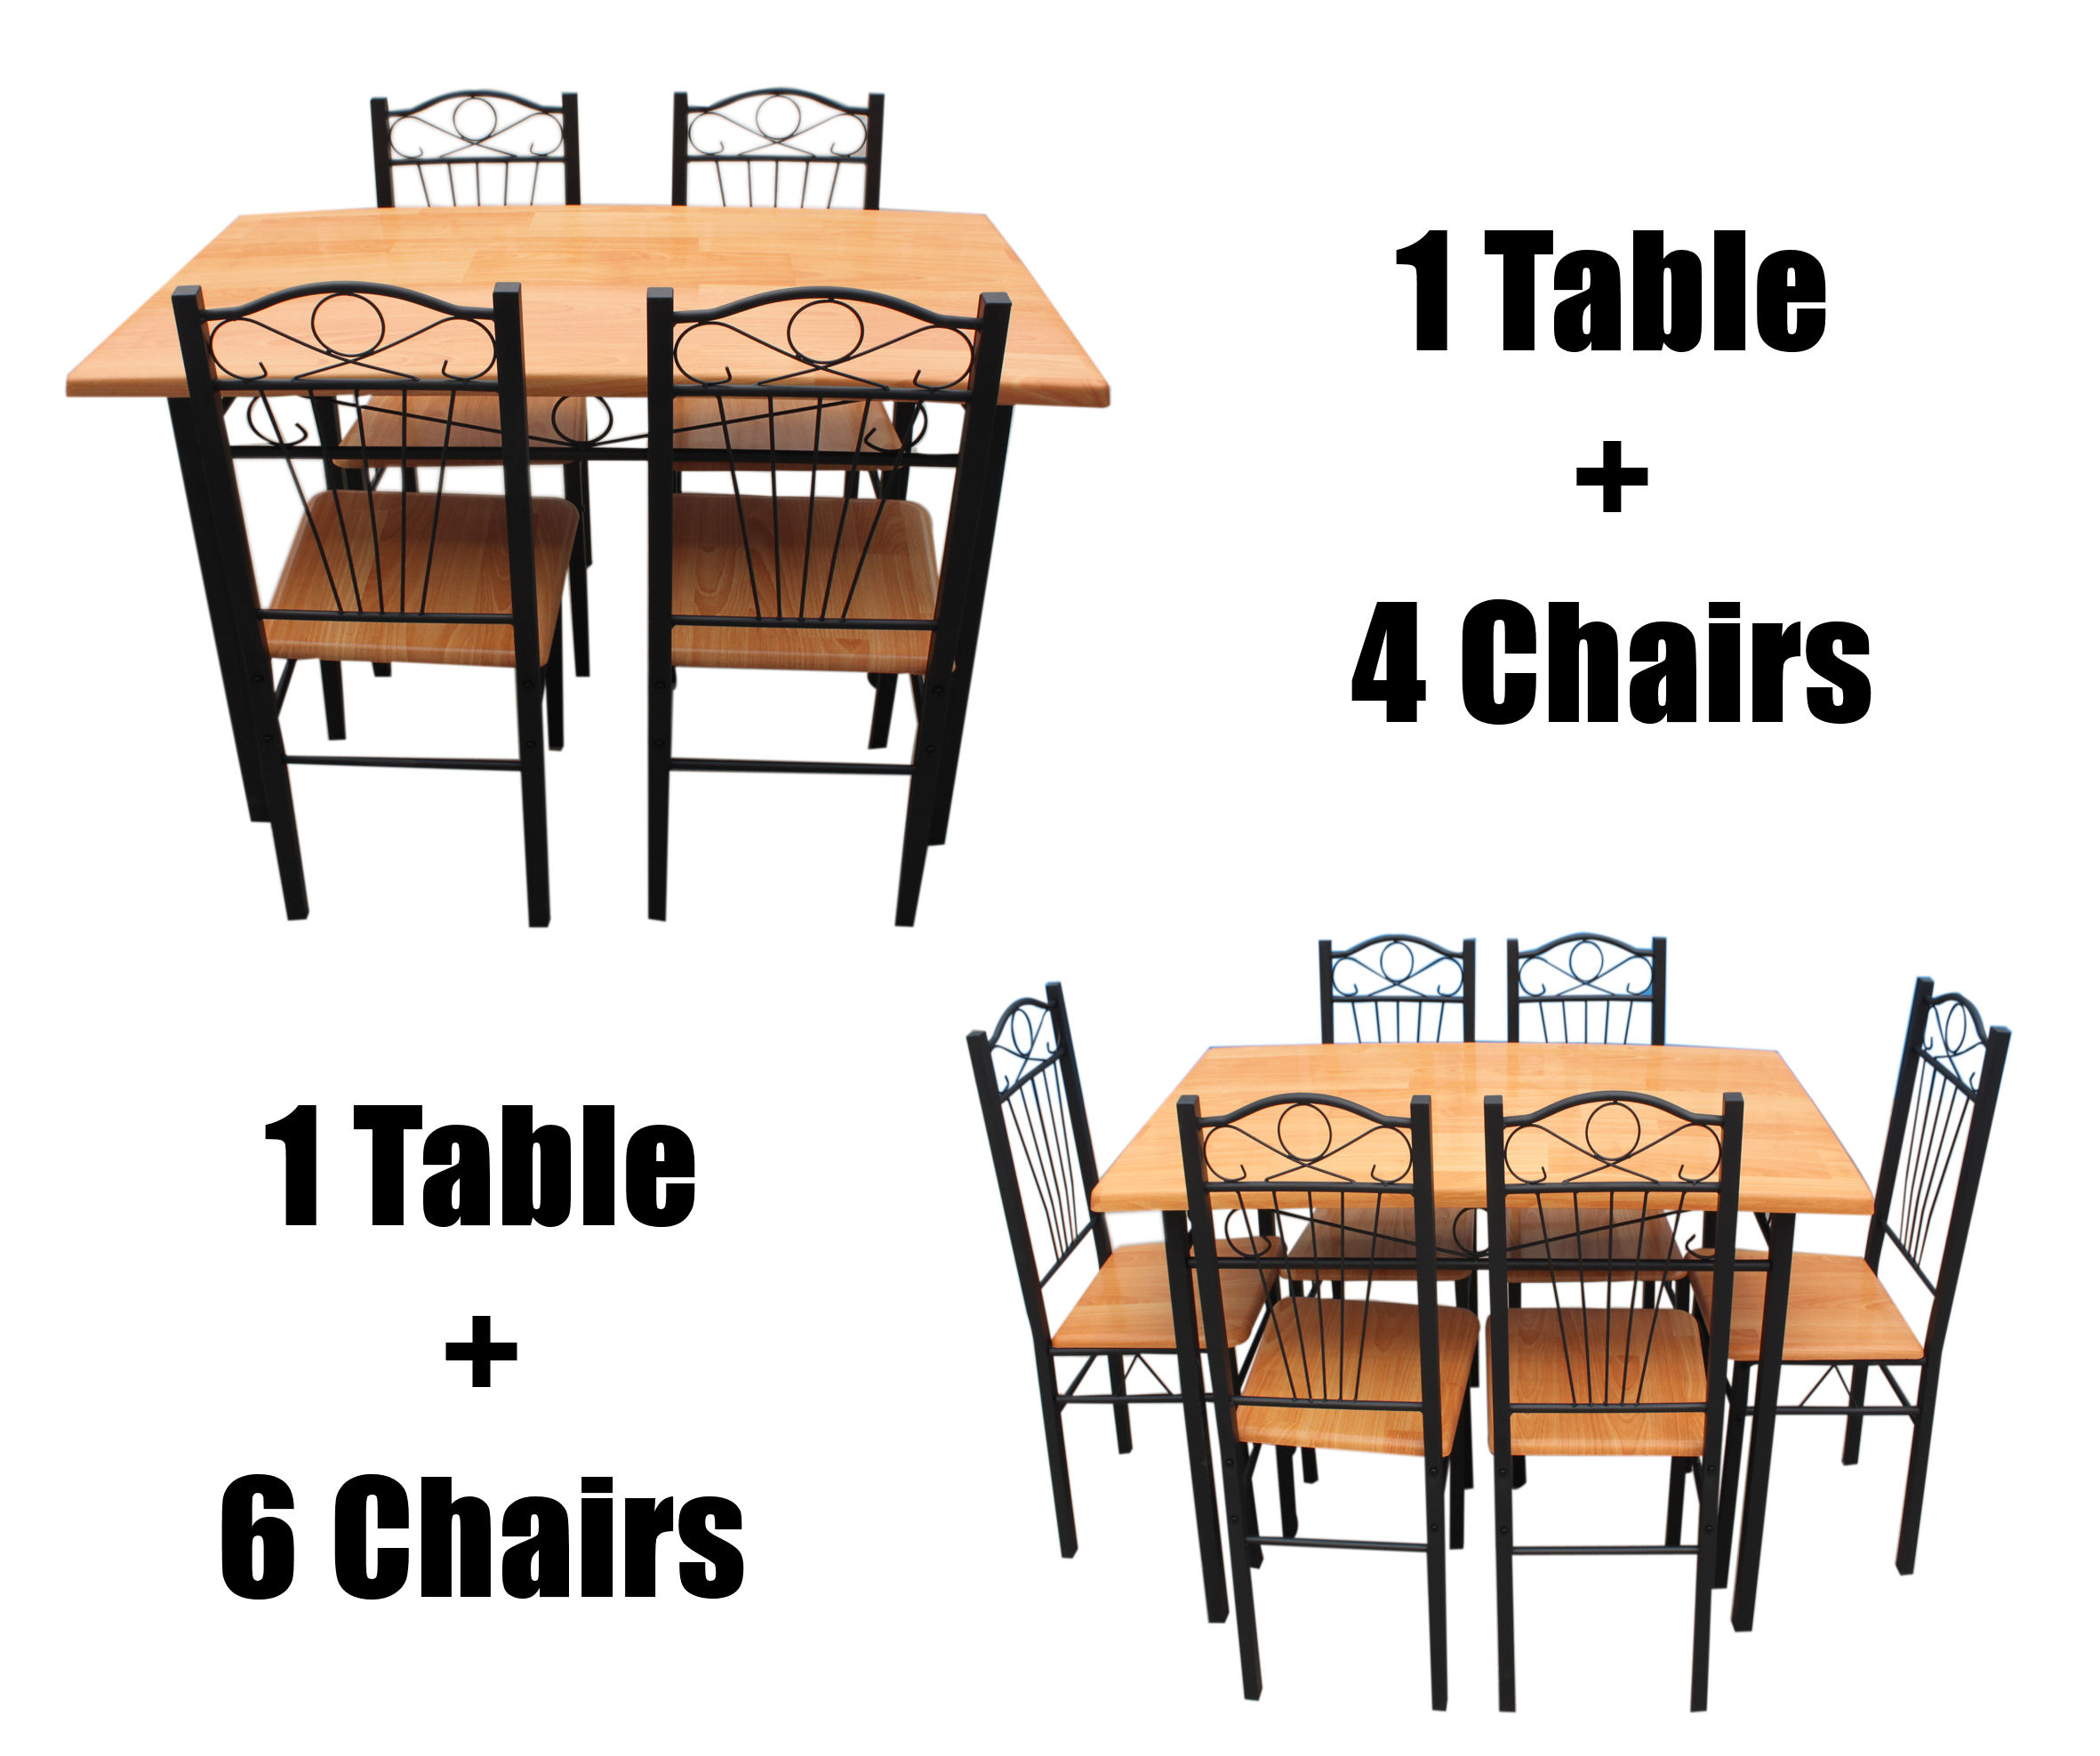 metal kitchen chair cotton dining covers uk new set with table chairs frame wood